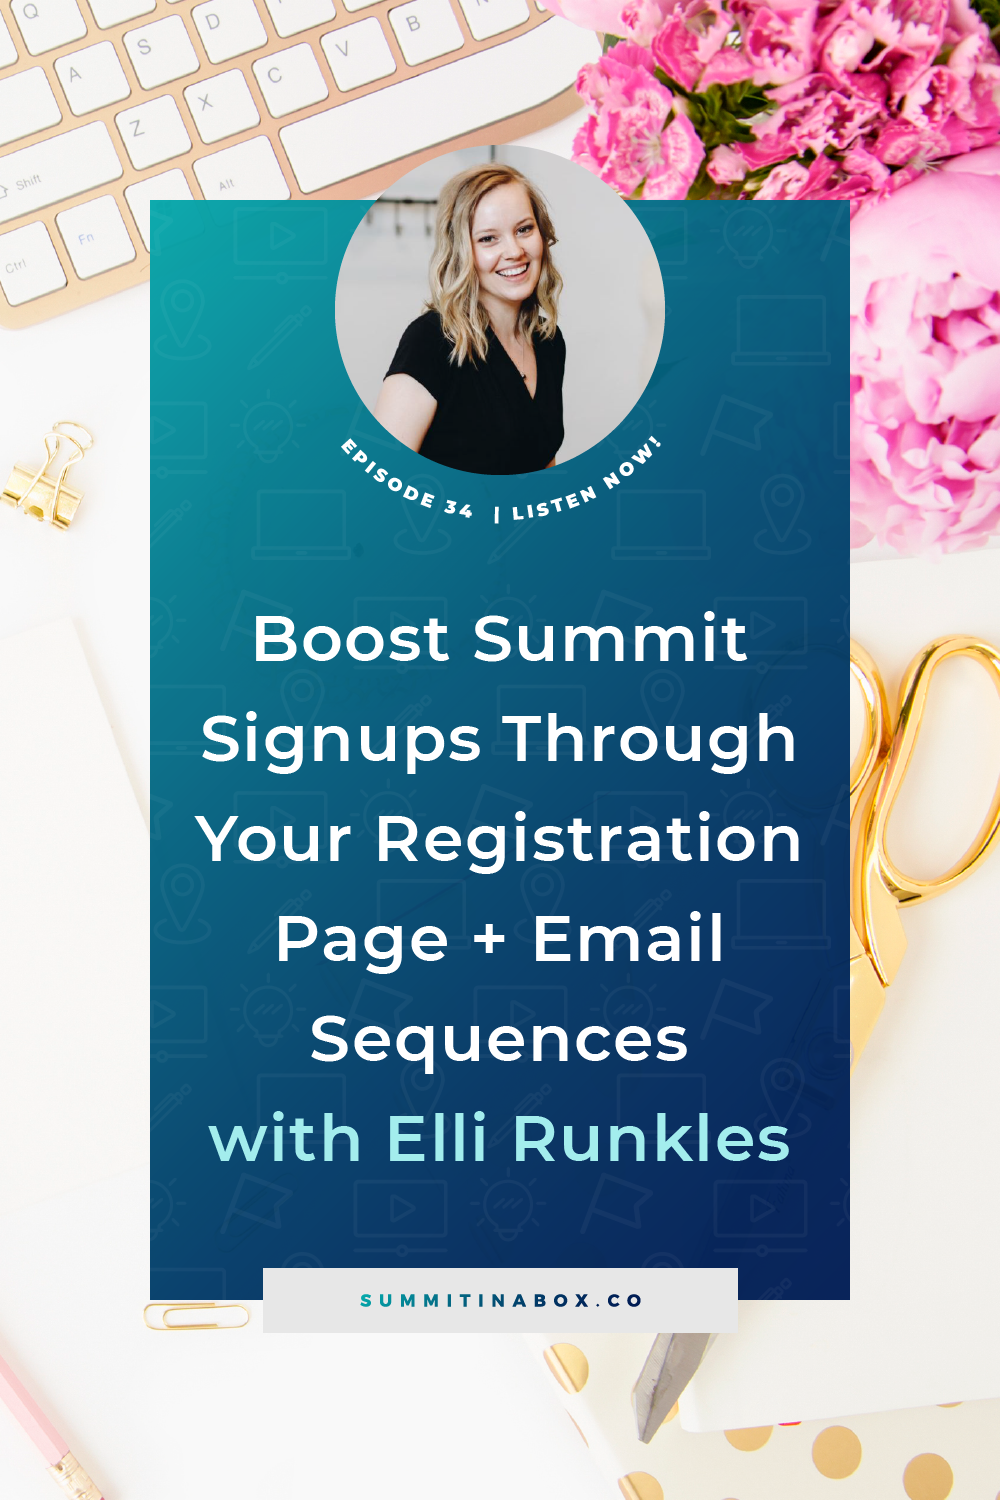 Learn how to turn your existing email subscribers into attendees to increase virtual summit signups and which emails to send once someone registers.